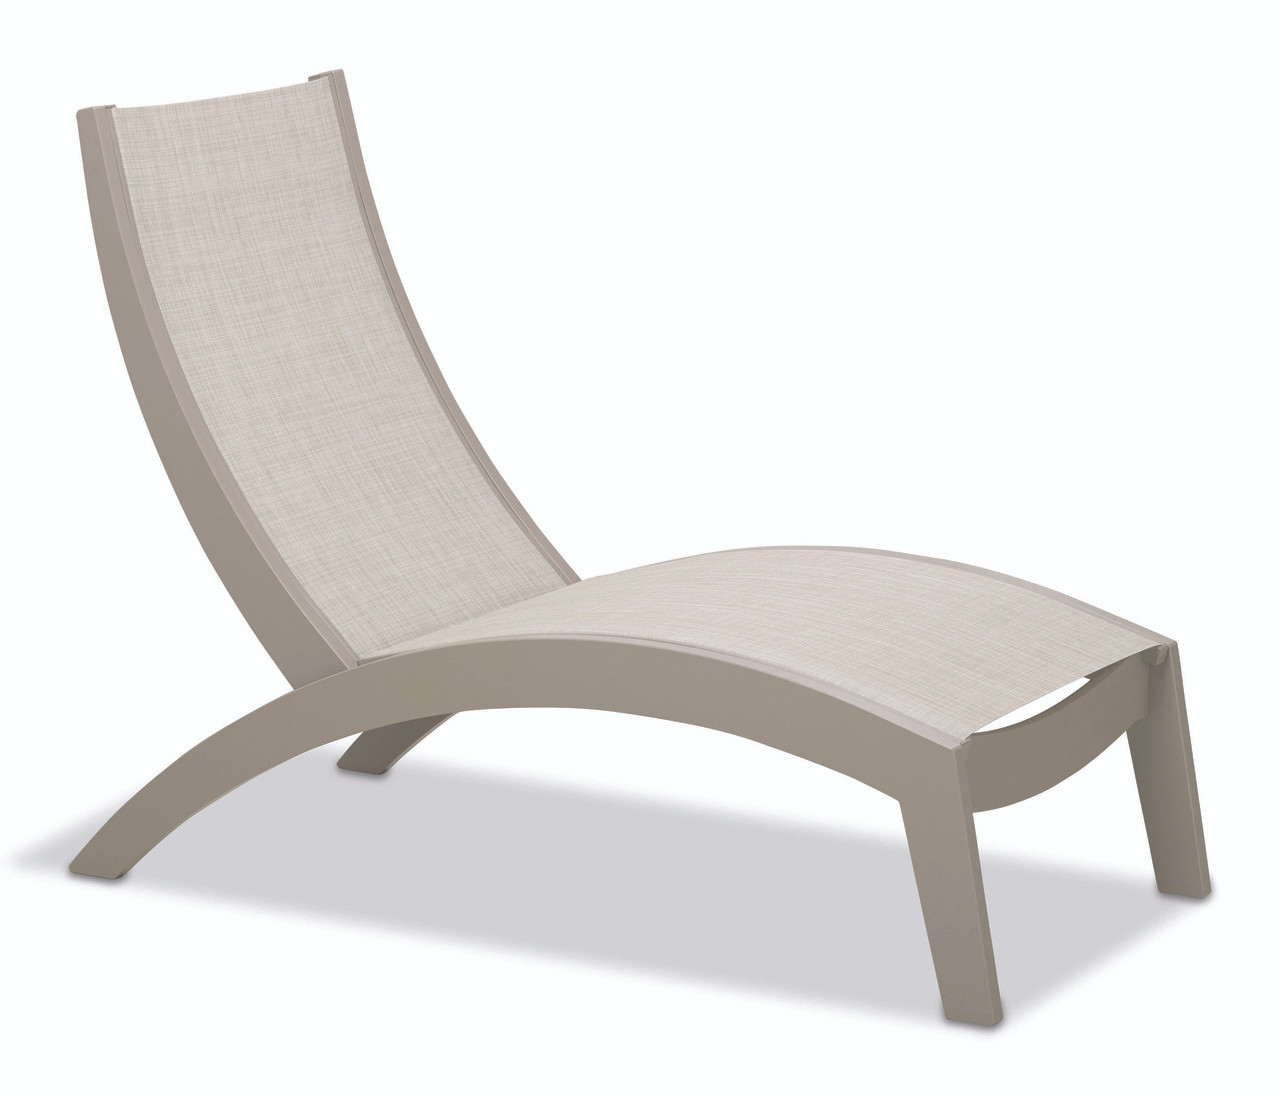 Telescope casual dune mgp sling stacking hydro lounge chaise patio furniture